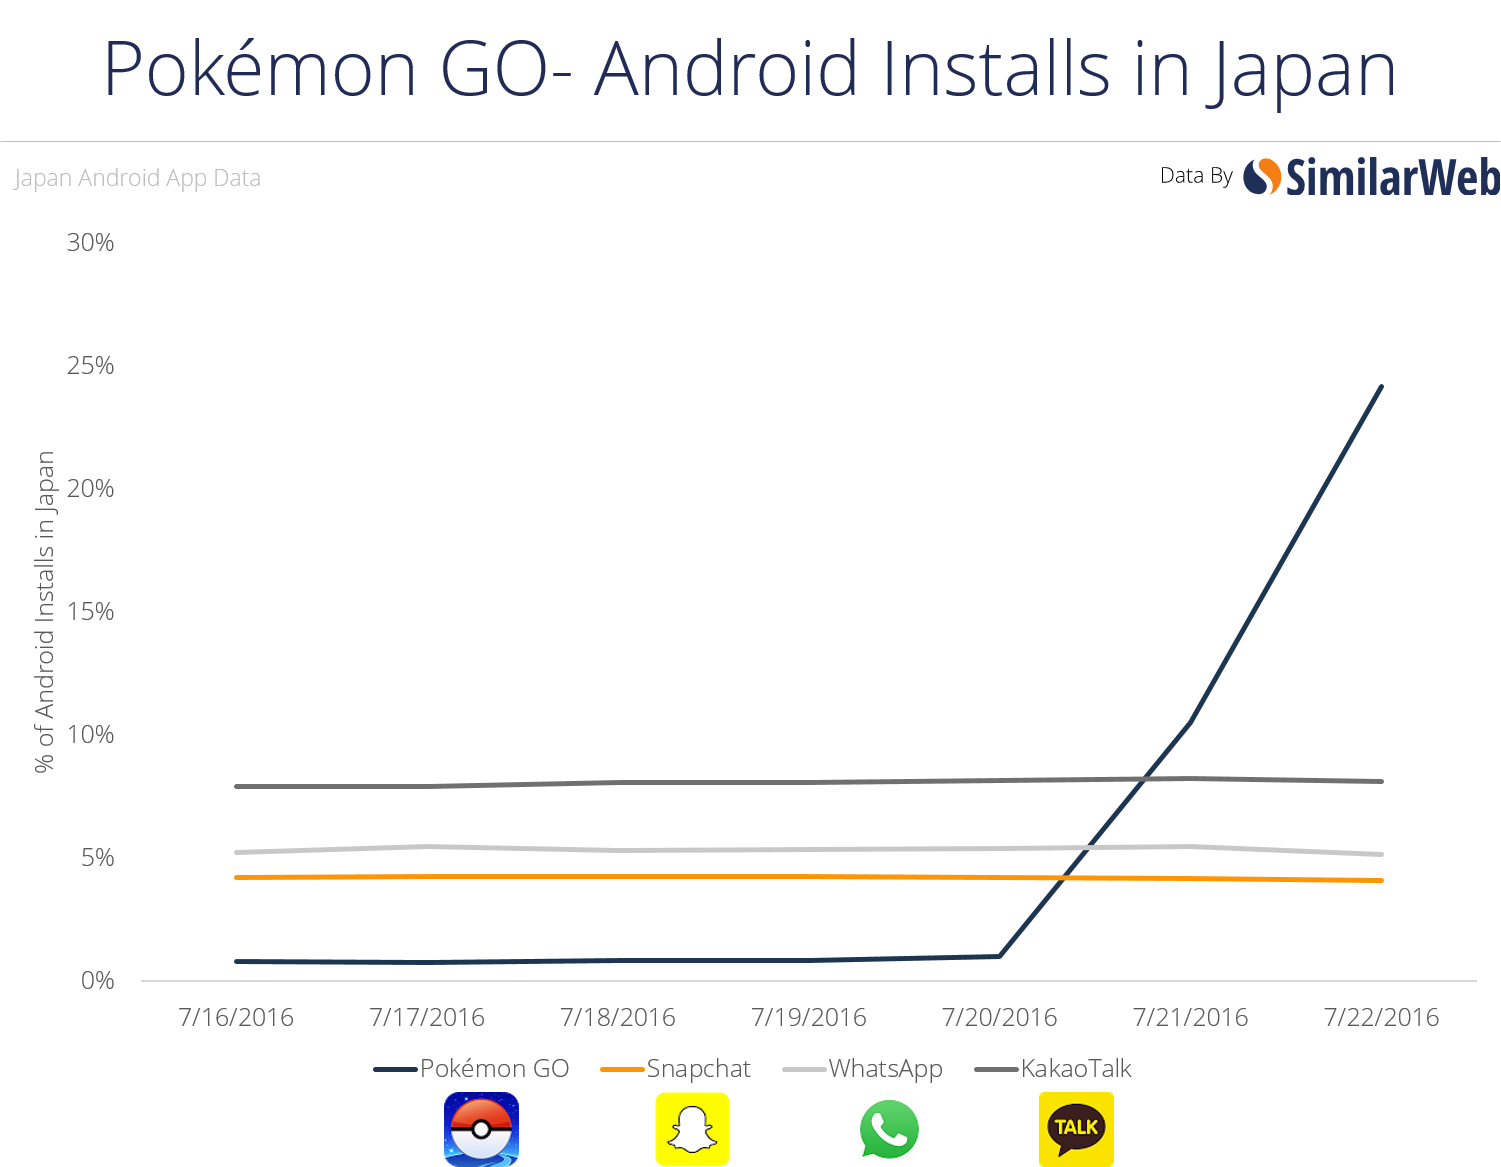 Where Are Pokémon GO's Biggest Users and What Other Apps Do They Use?